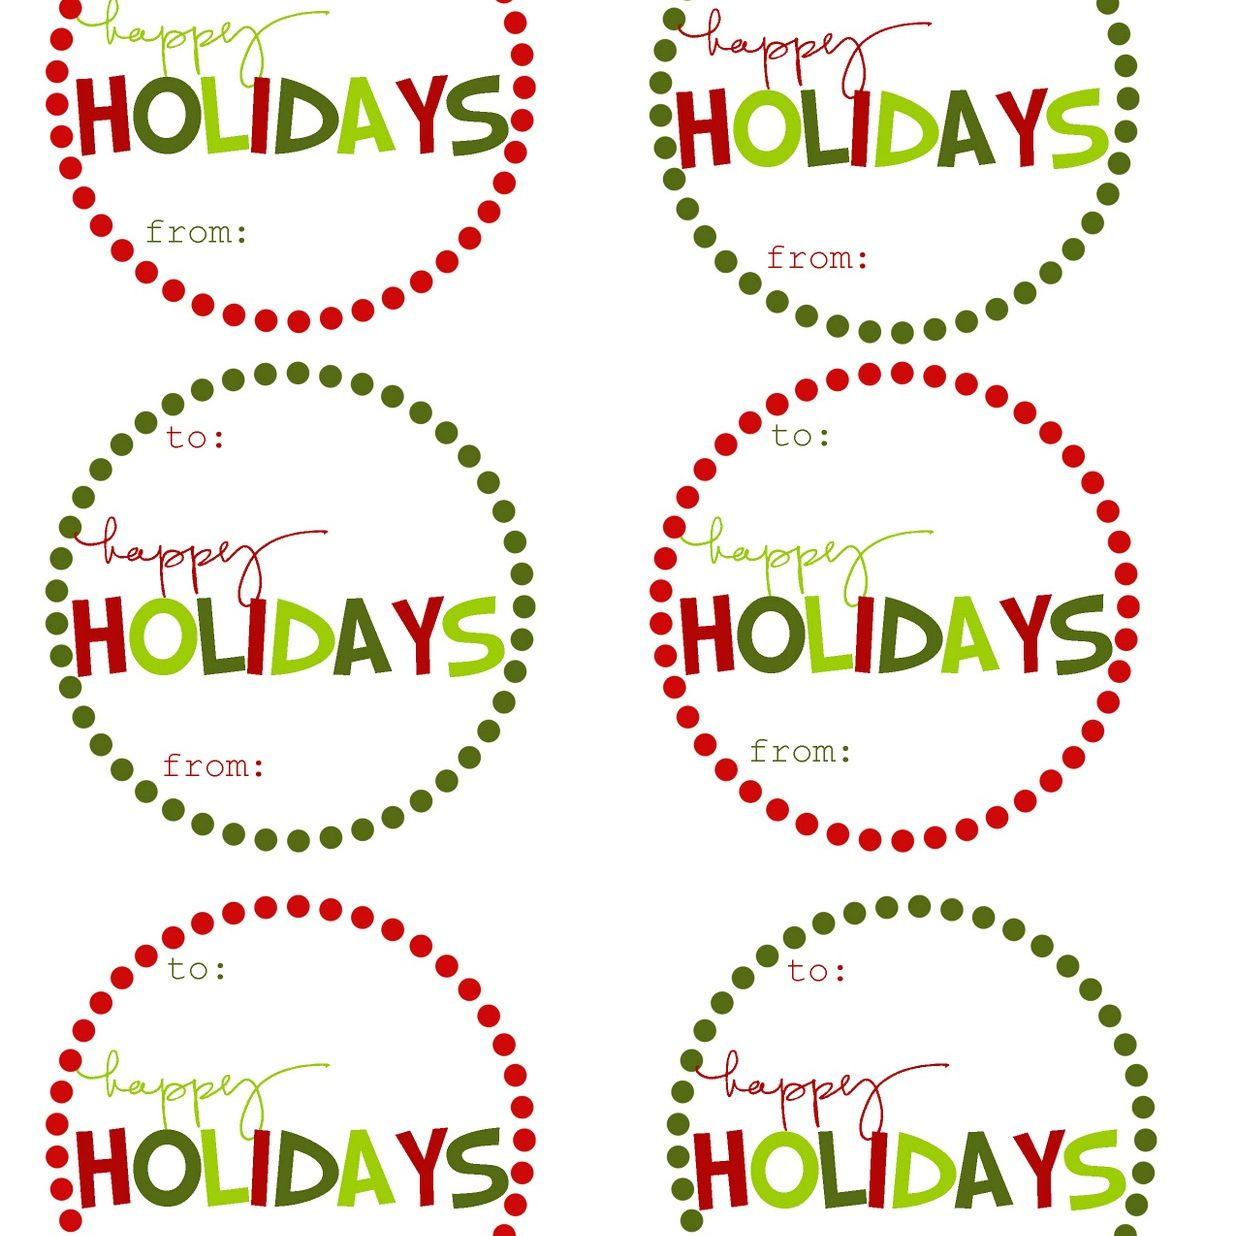 40 Sets Of Free Printable Christmas Gift Tags - Free Printable To From Gift Tags